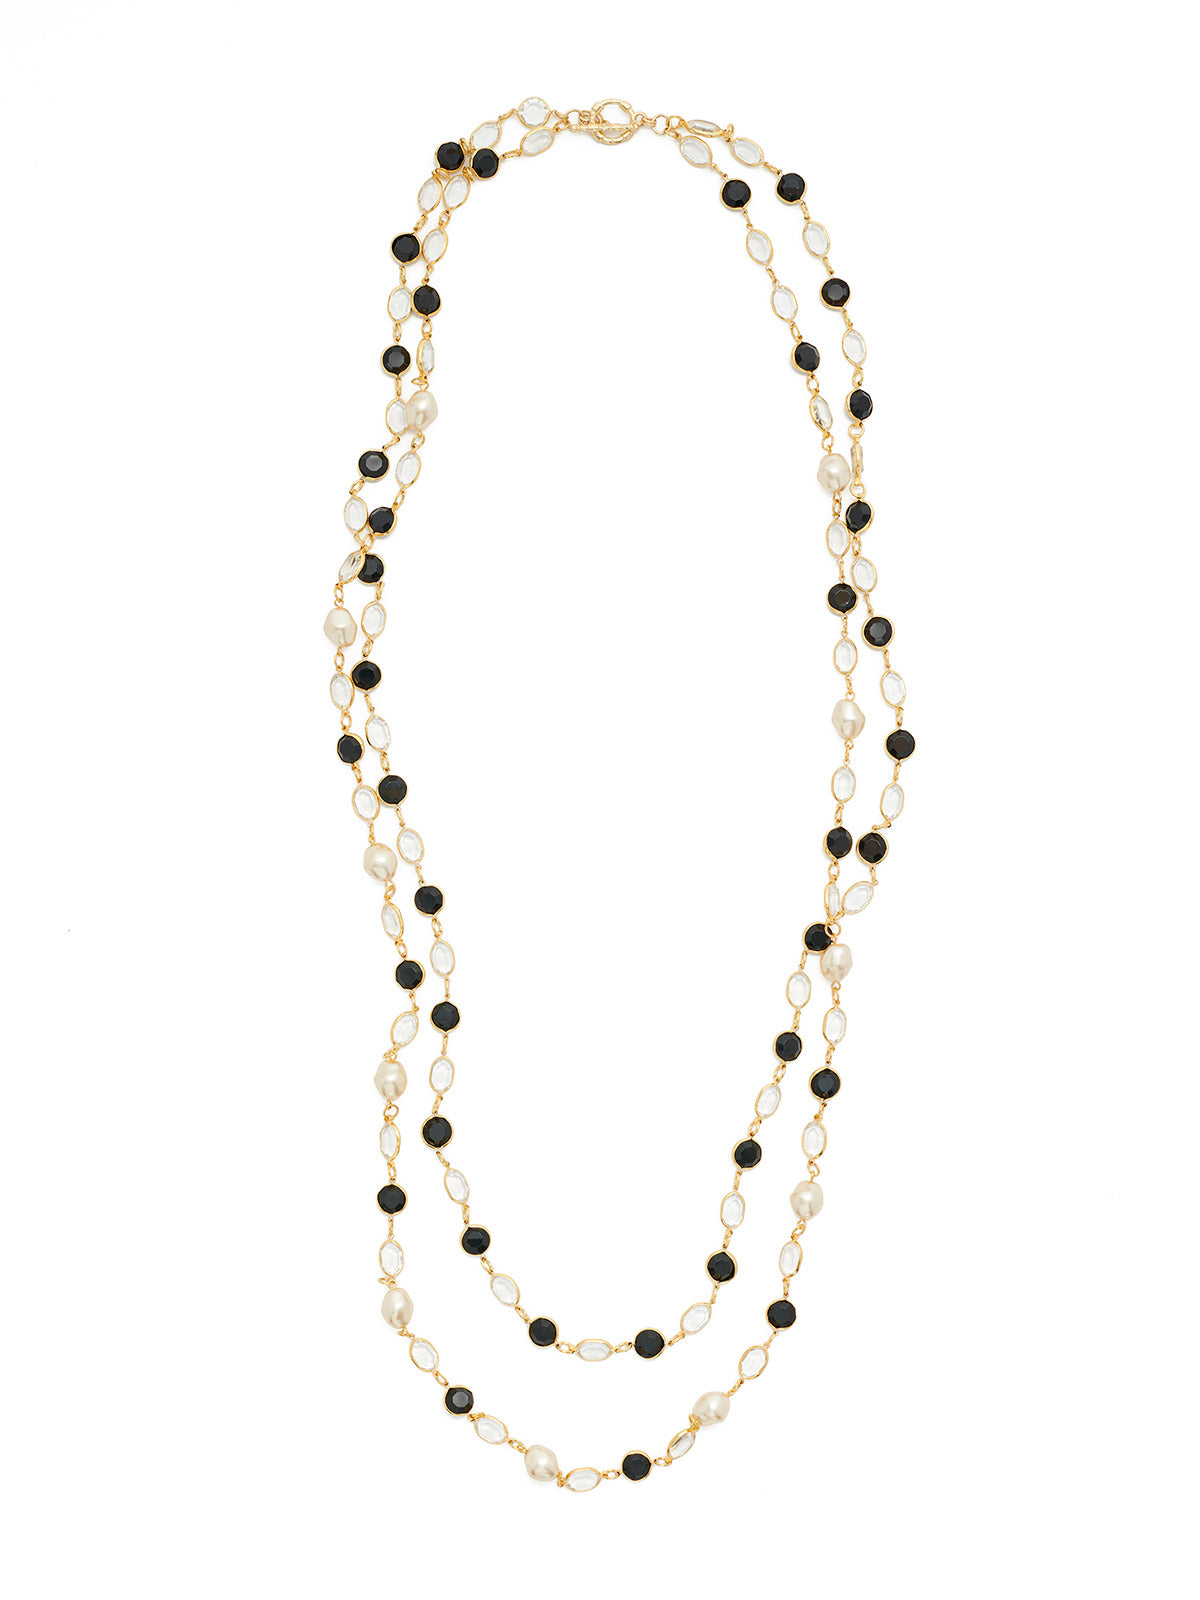 Dual Strand Crystal and Pearl Necklace